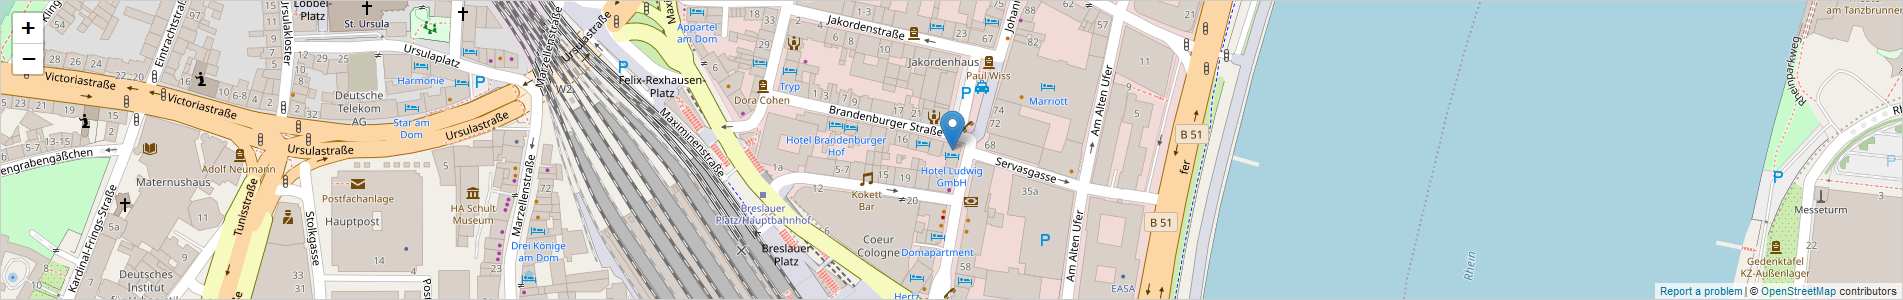 Hotel Ludwig - Location & Parking in Cologne